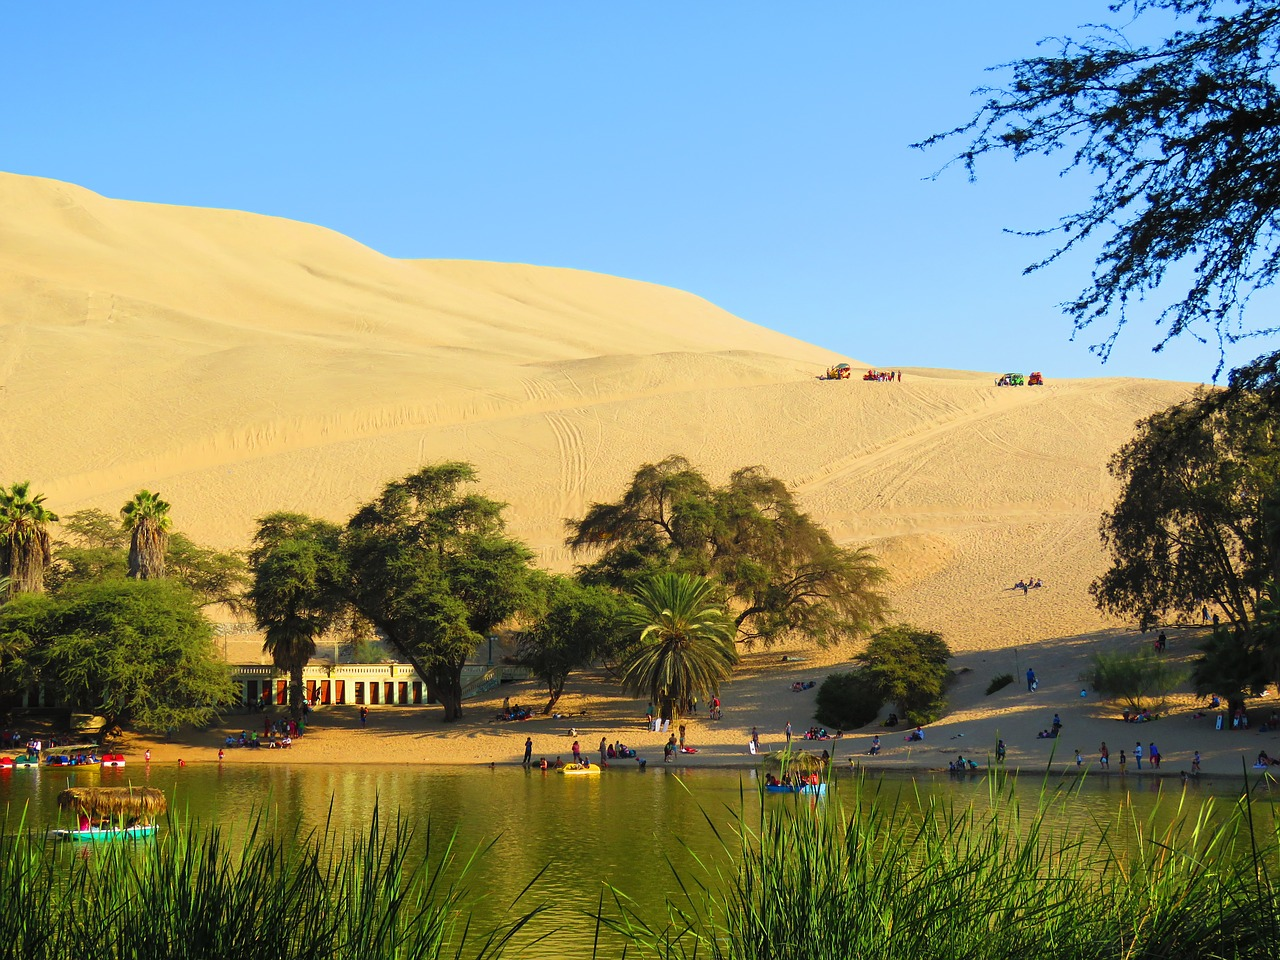 Huacachina is one of the most Beautiful Places in Latin America